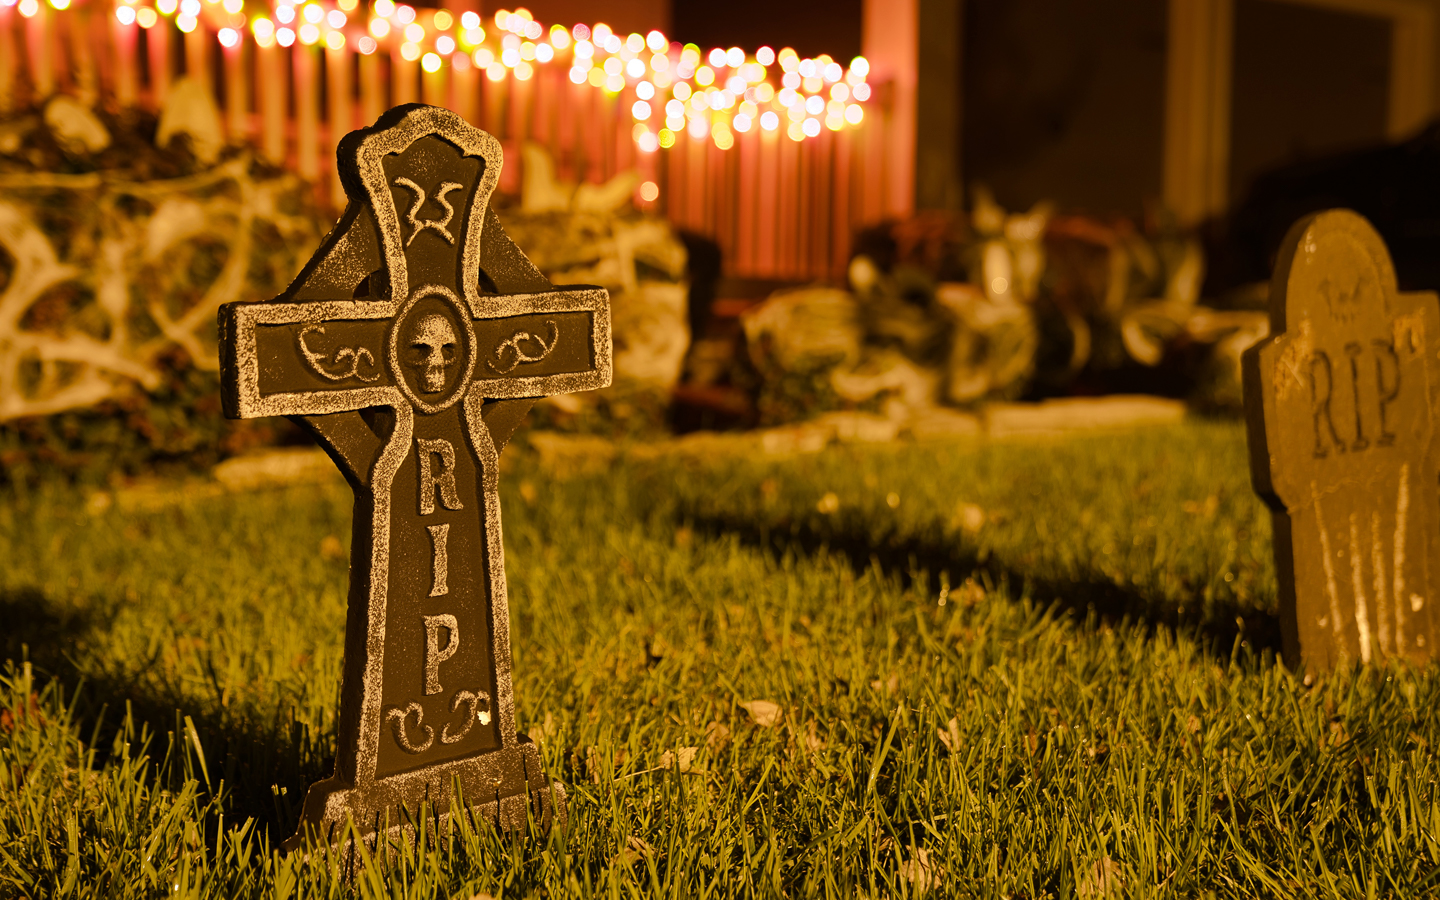 5 Spooky Facts about Your Lawn Image